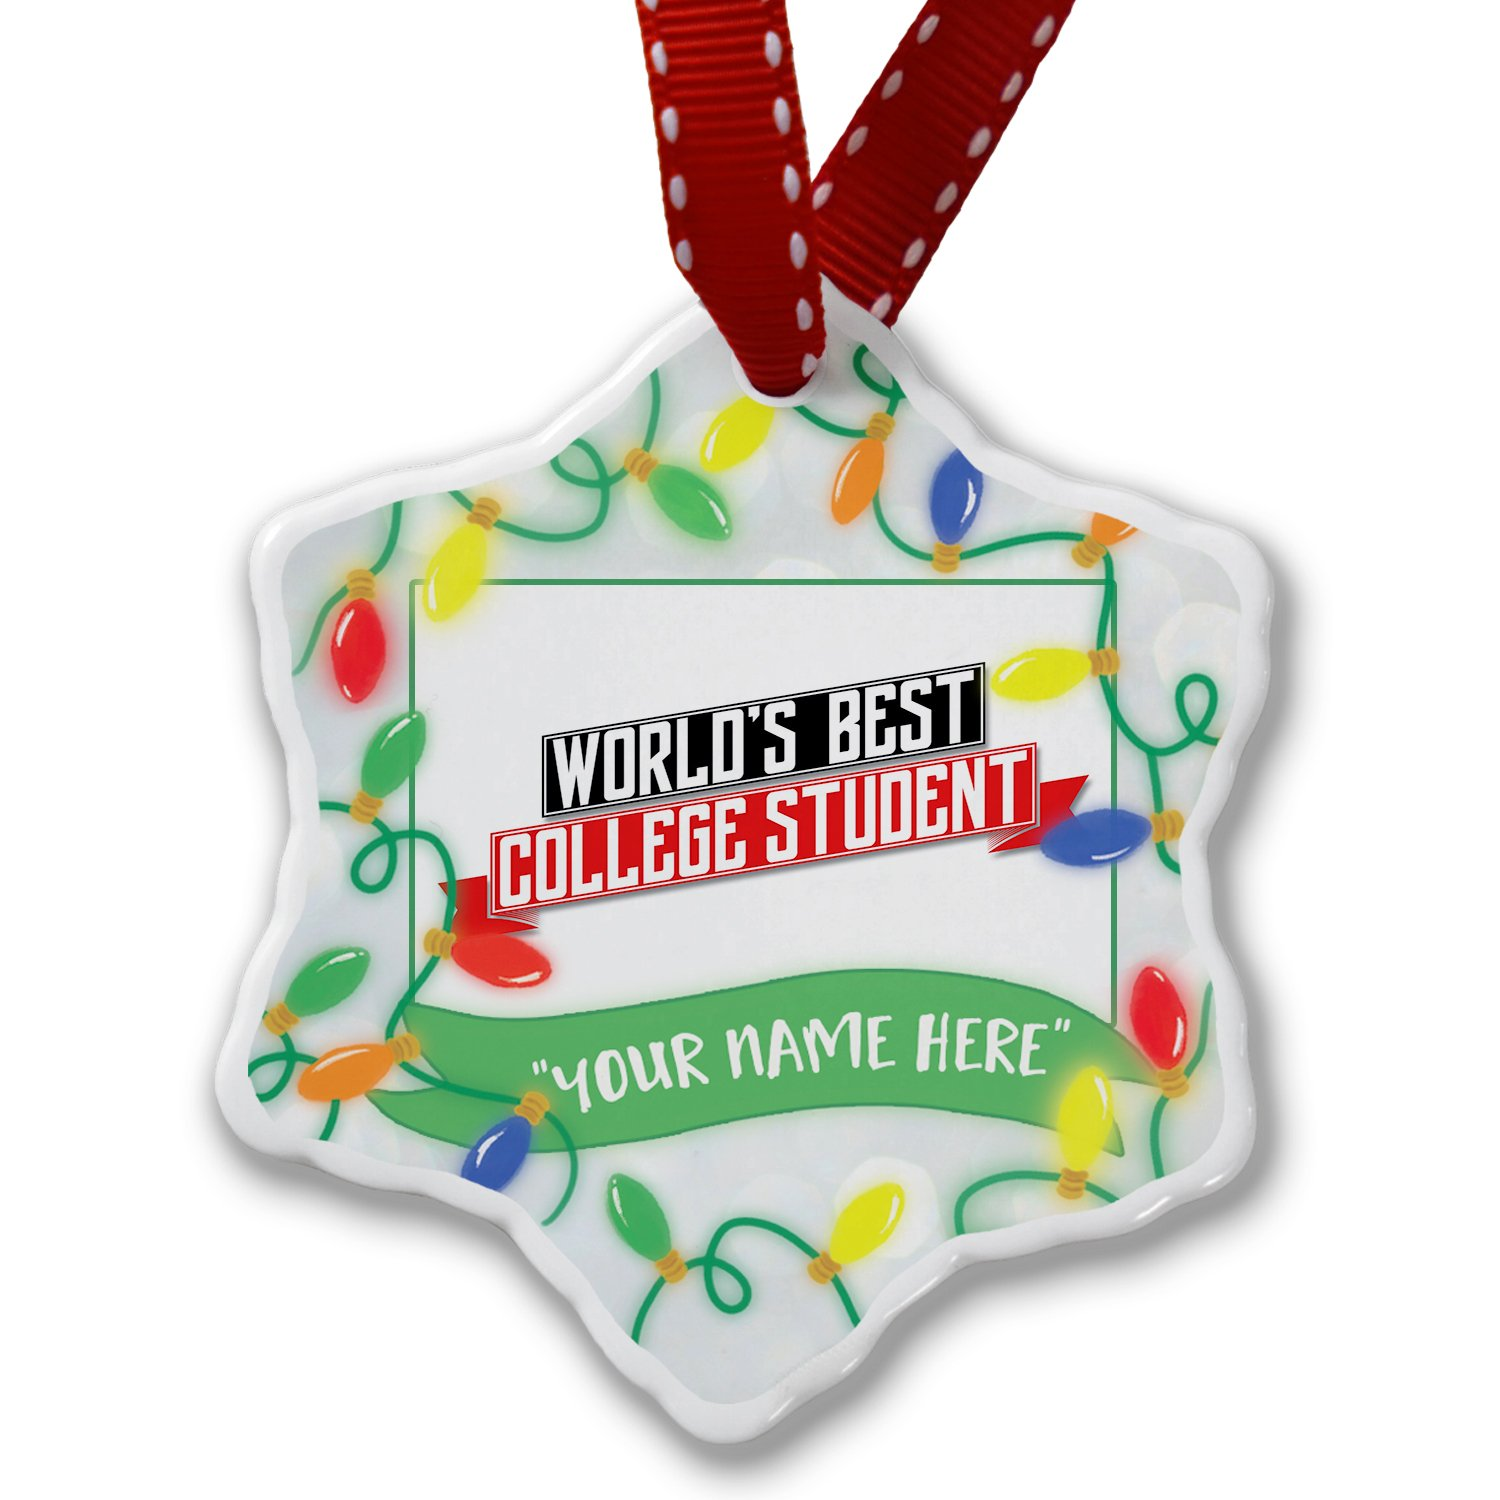 Personalized Name Christmas Ornament, Worlds Best College Student NEONBLOND